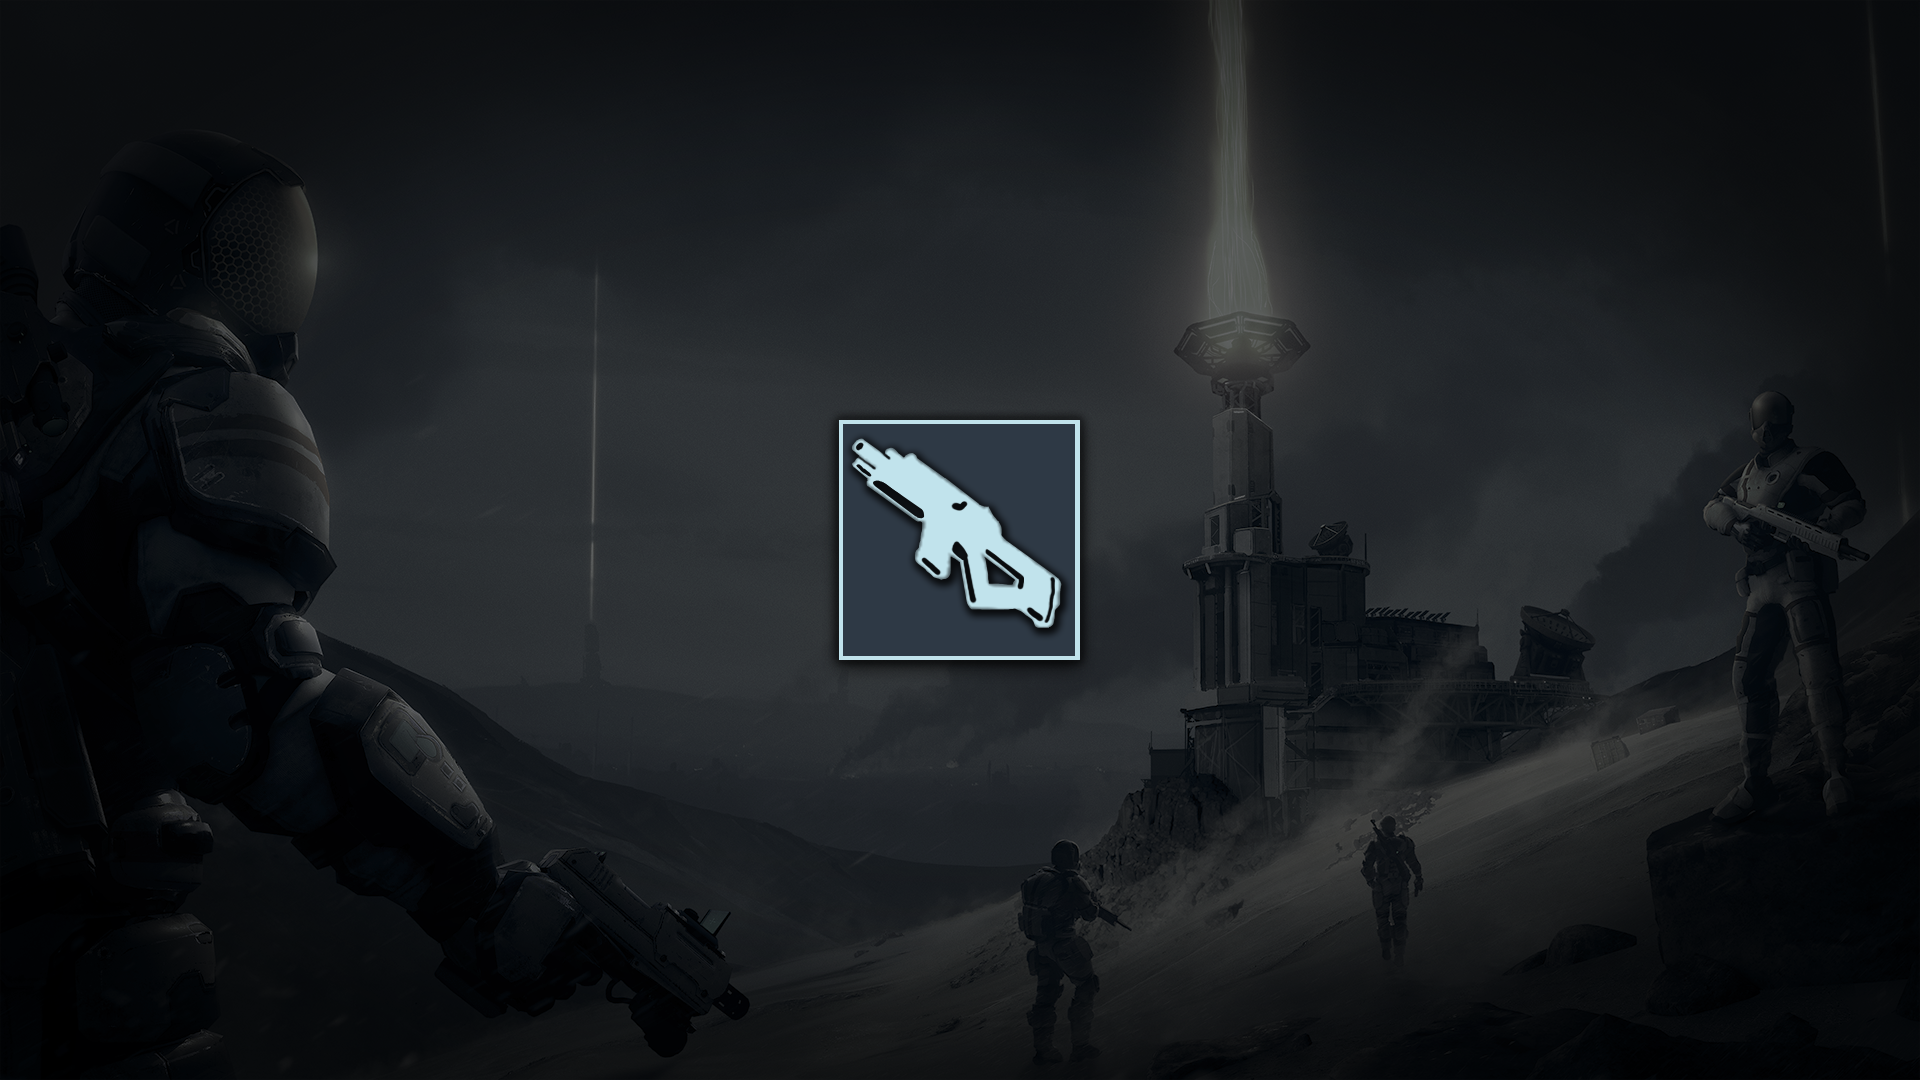 Icon for There are many like it, but this one is mine